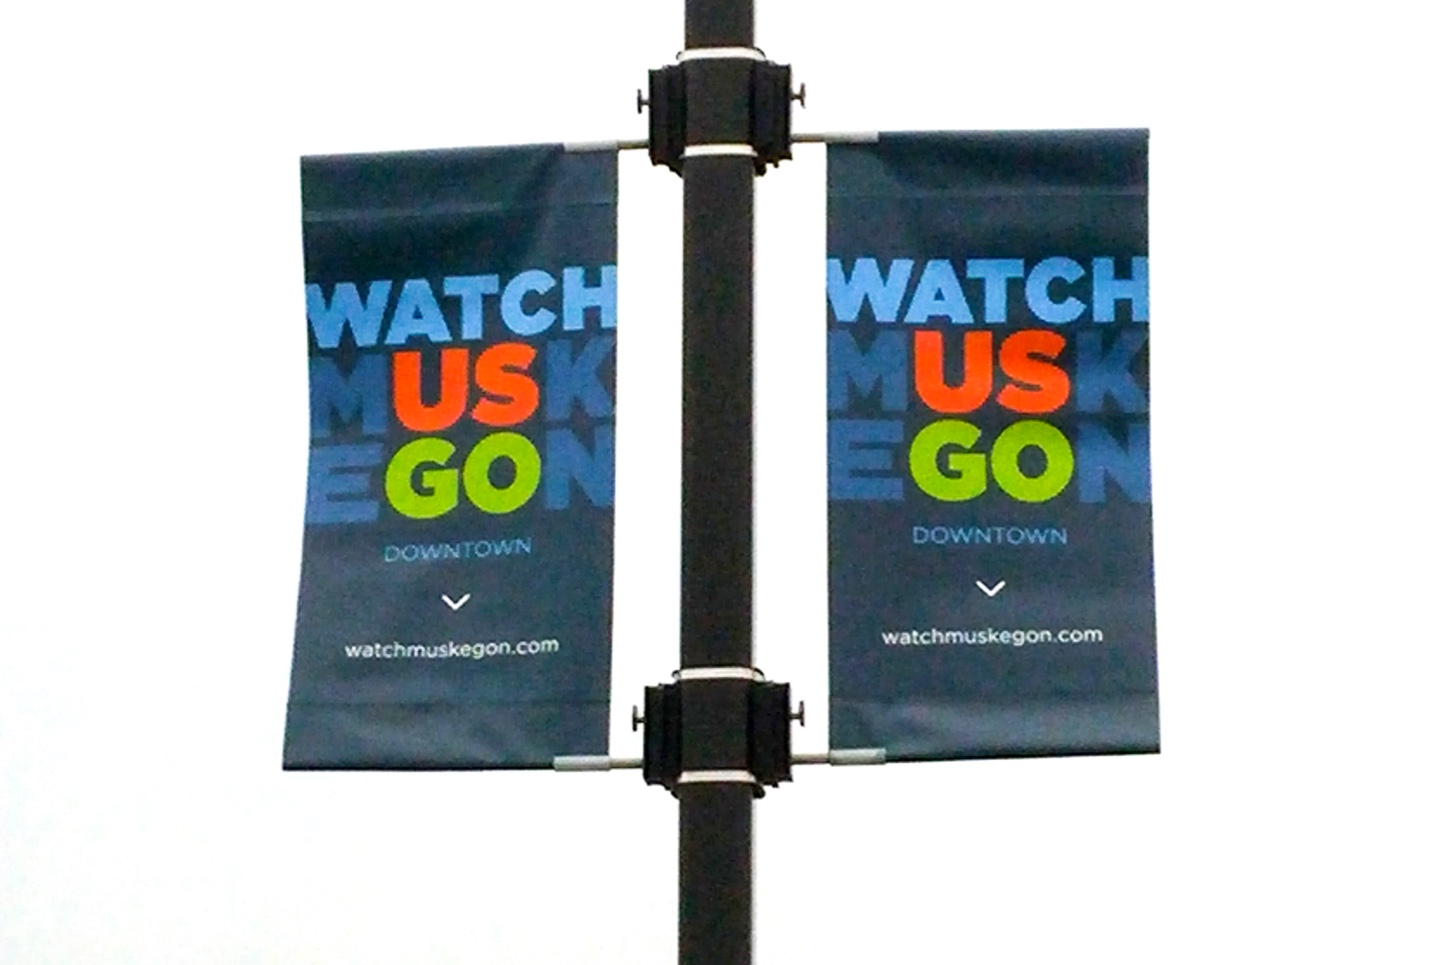 5 ways to increase hometown pride with street pole banners